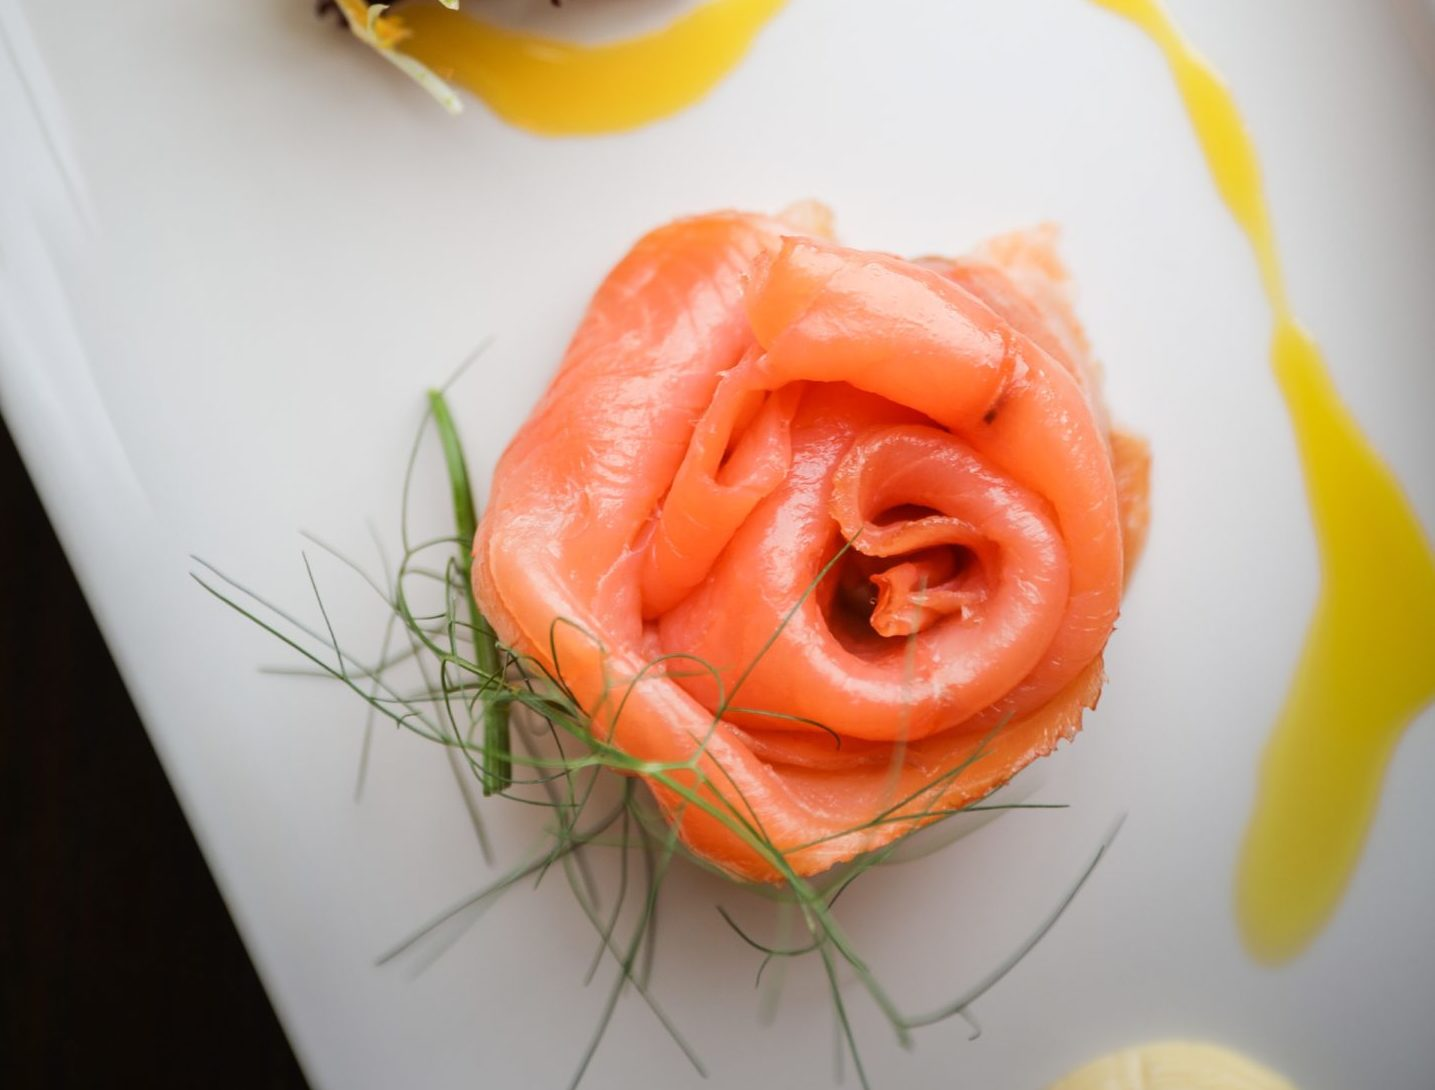 Smoked salmon with Safron aioli. Pictures by Kris Miller